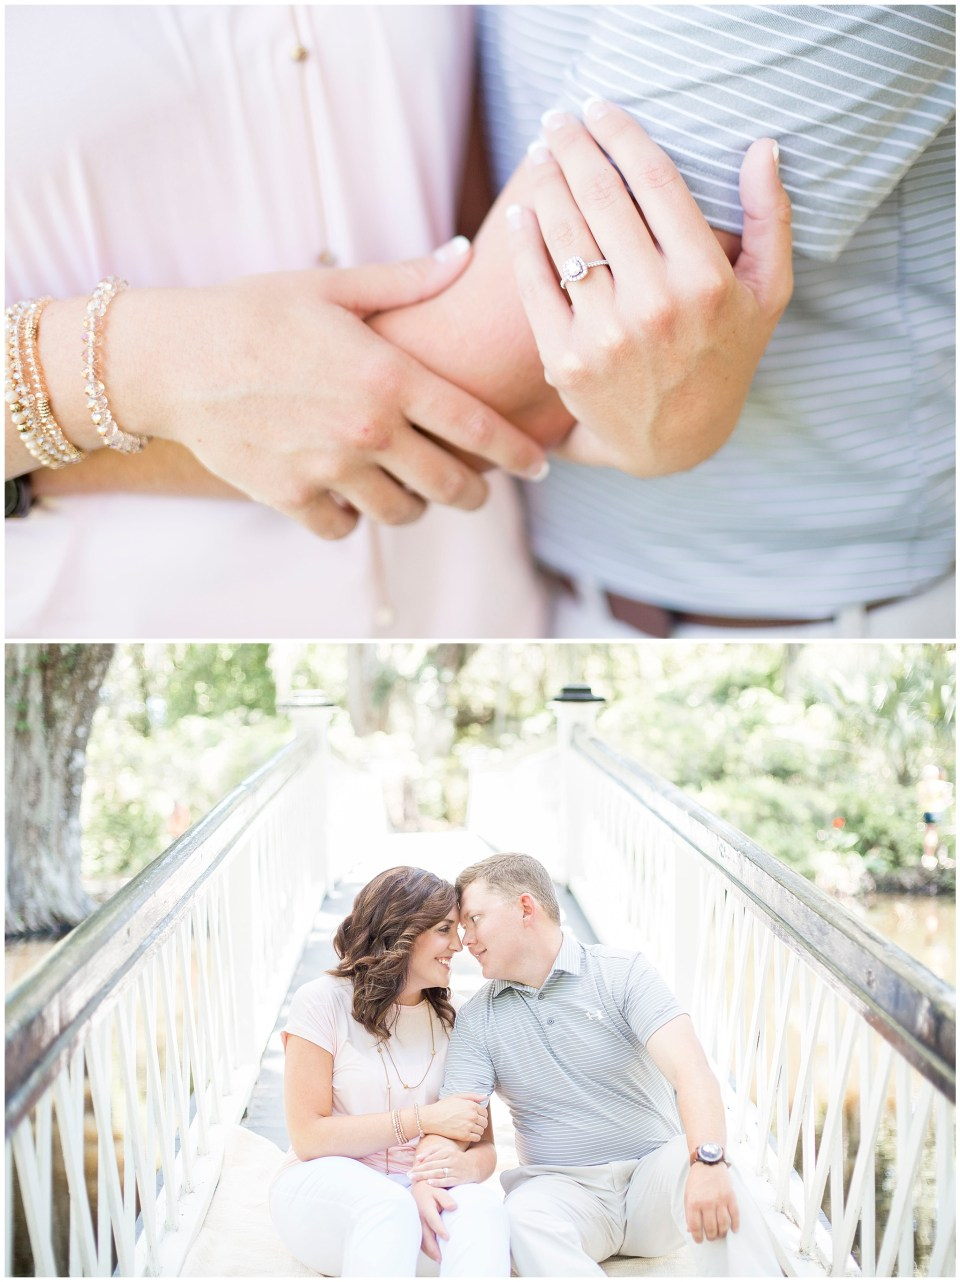 magnolia plantation and gardens engagement session in charleston sc by HYPimages